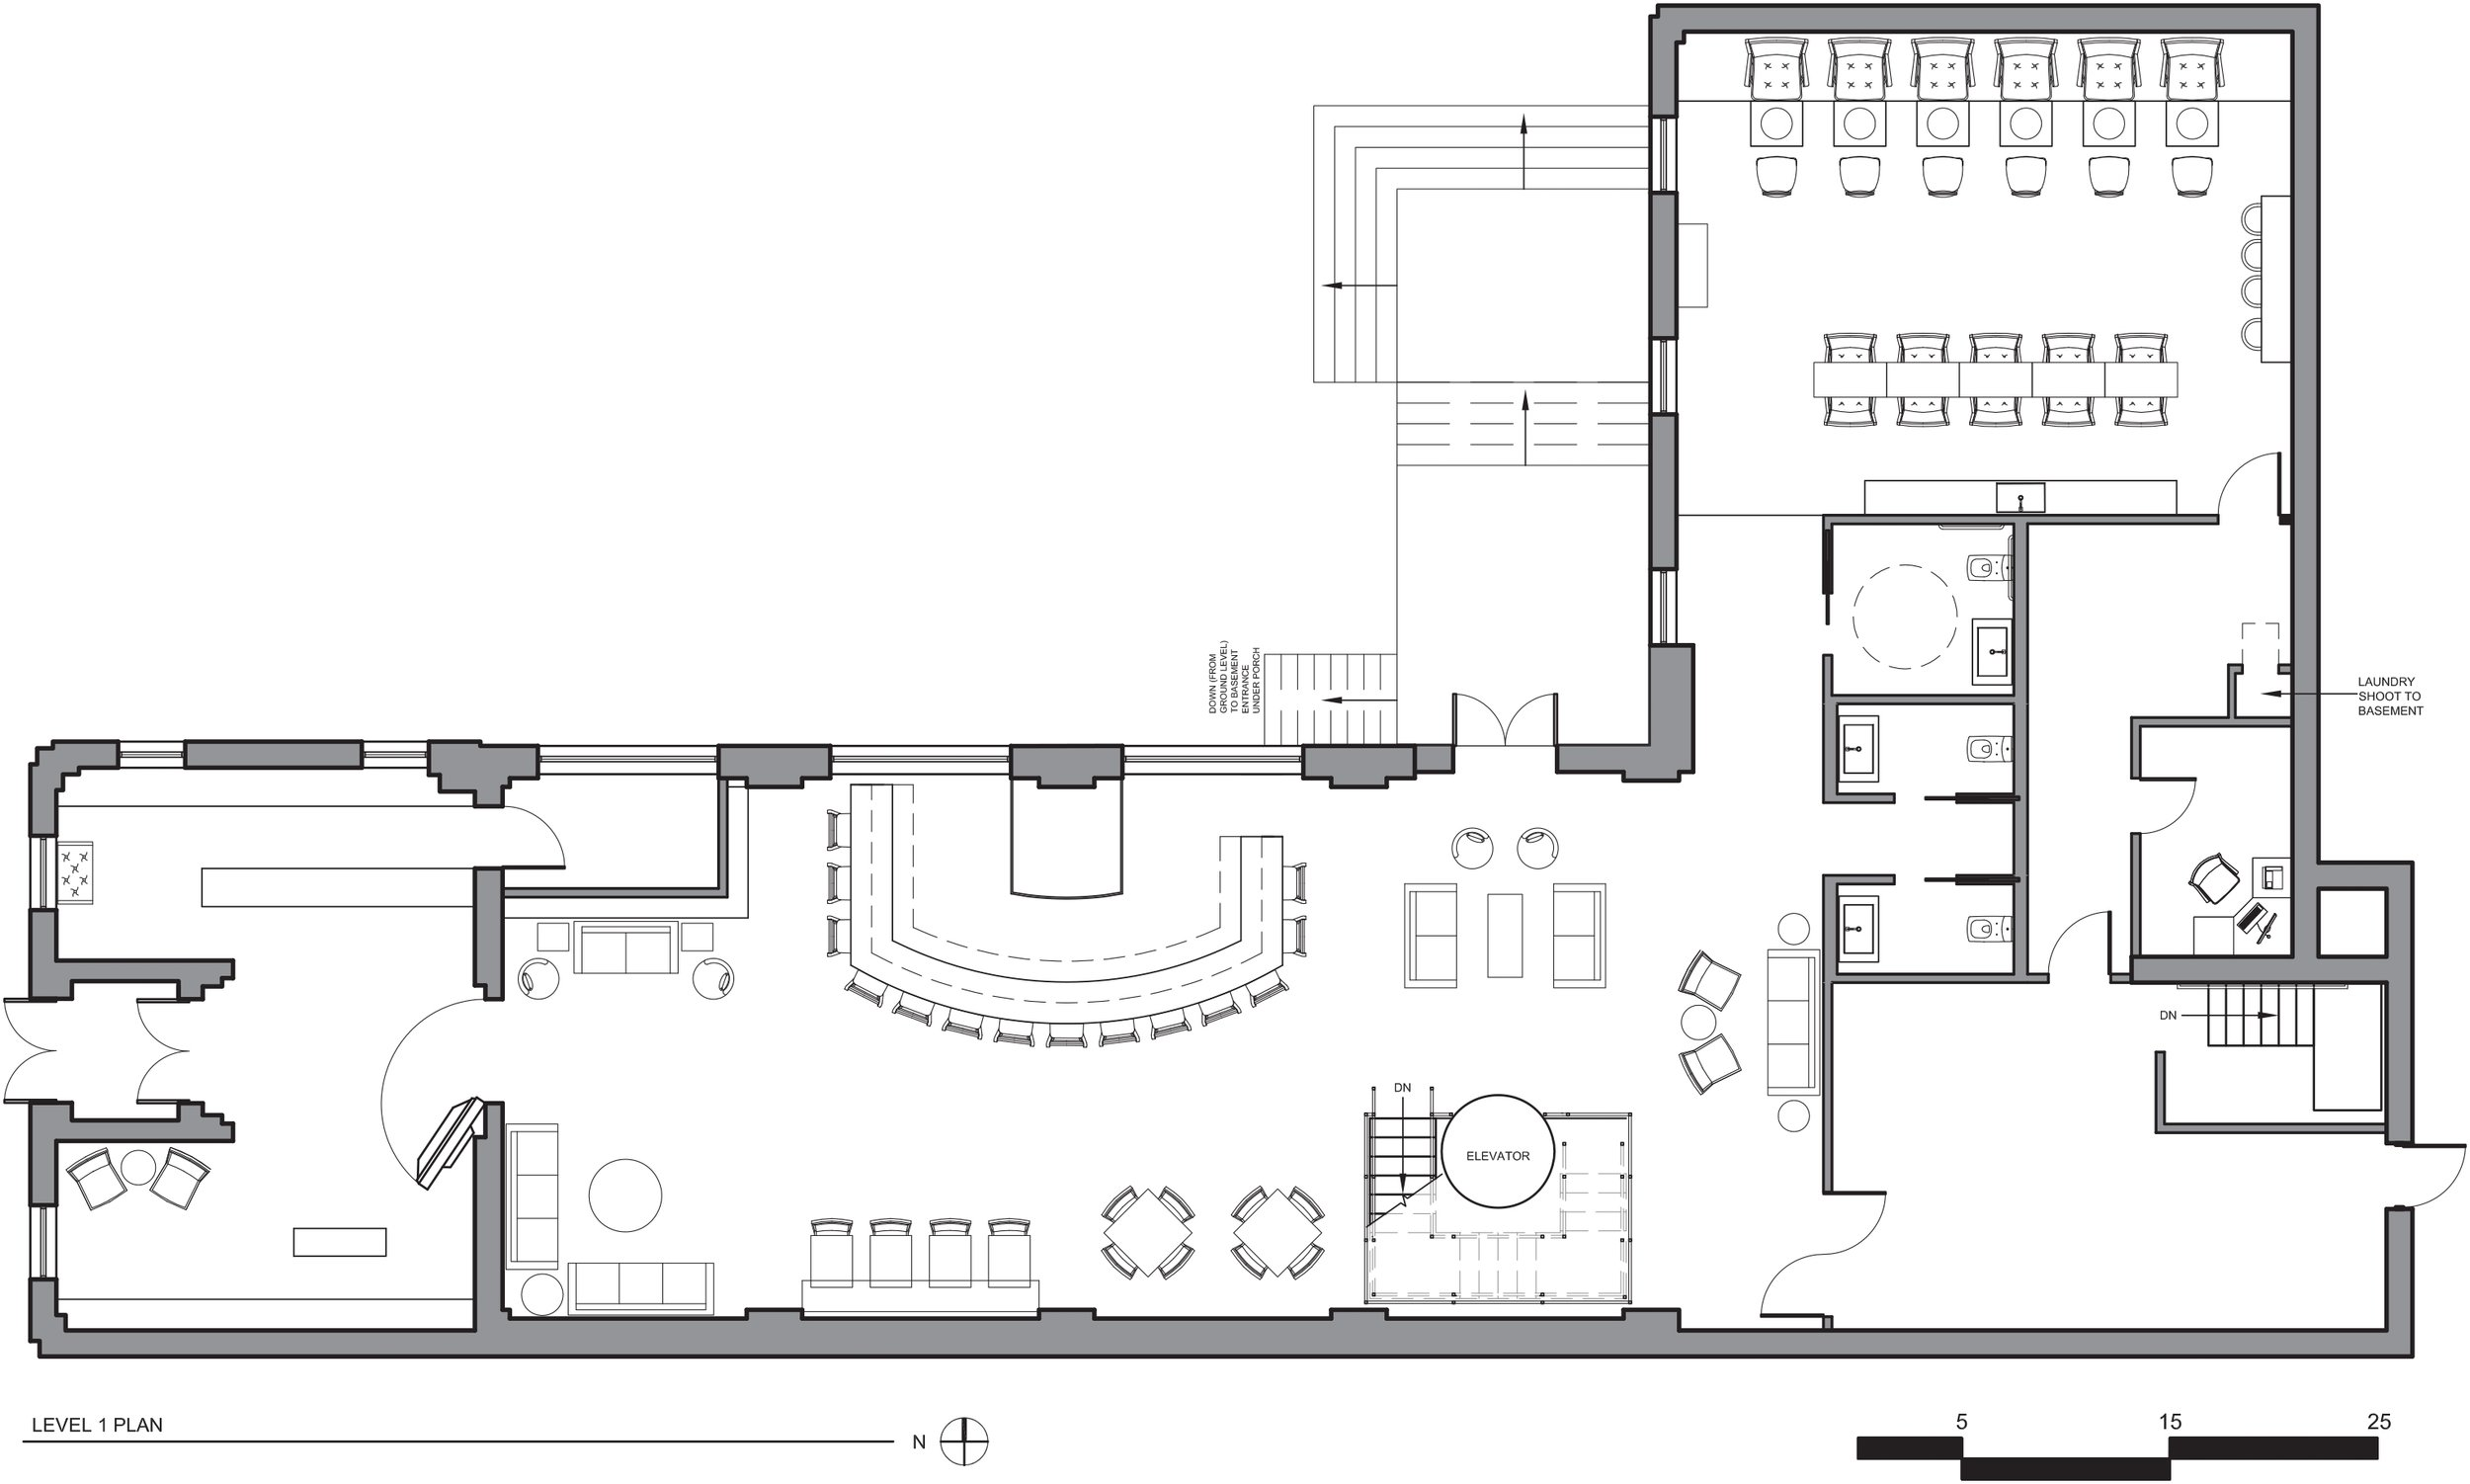 100 100 store floor plan maker 67 house design with for 100 floors floor 69